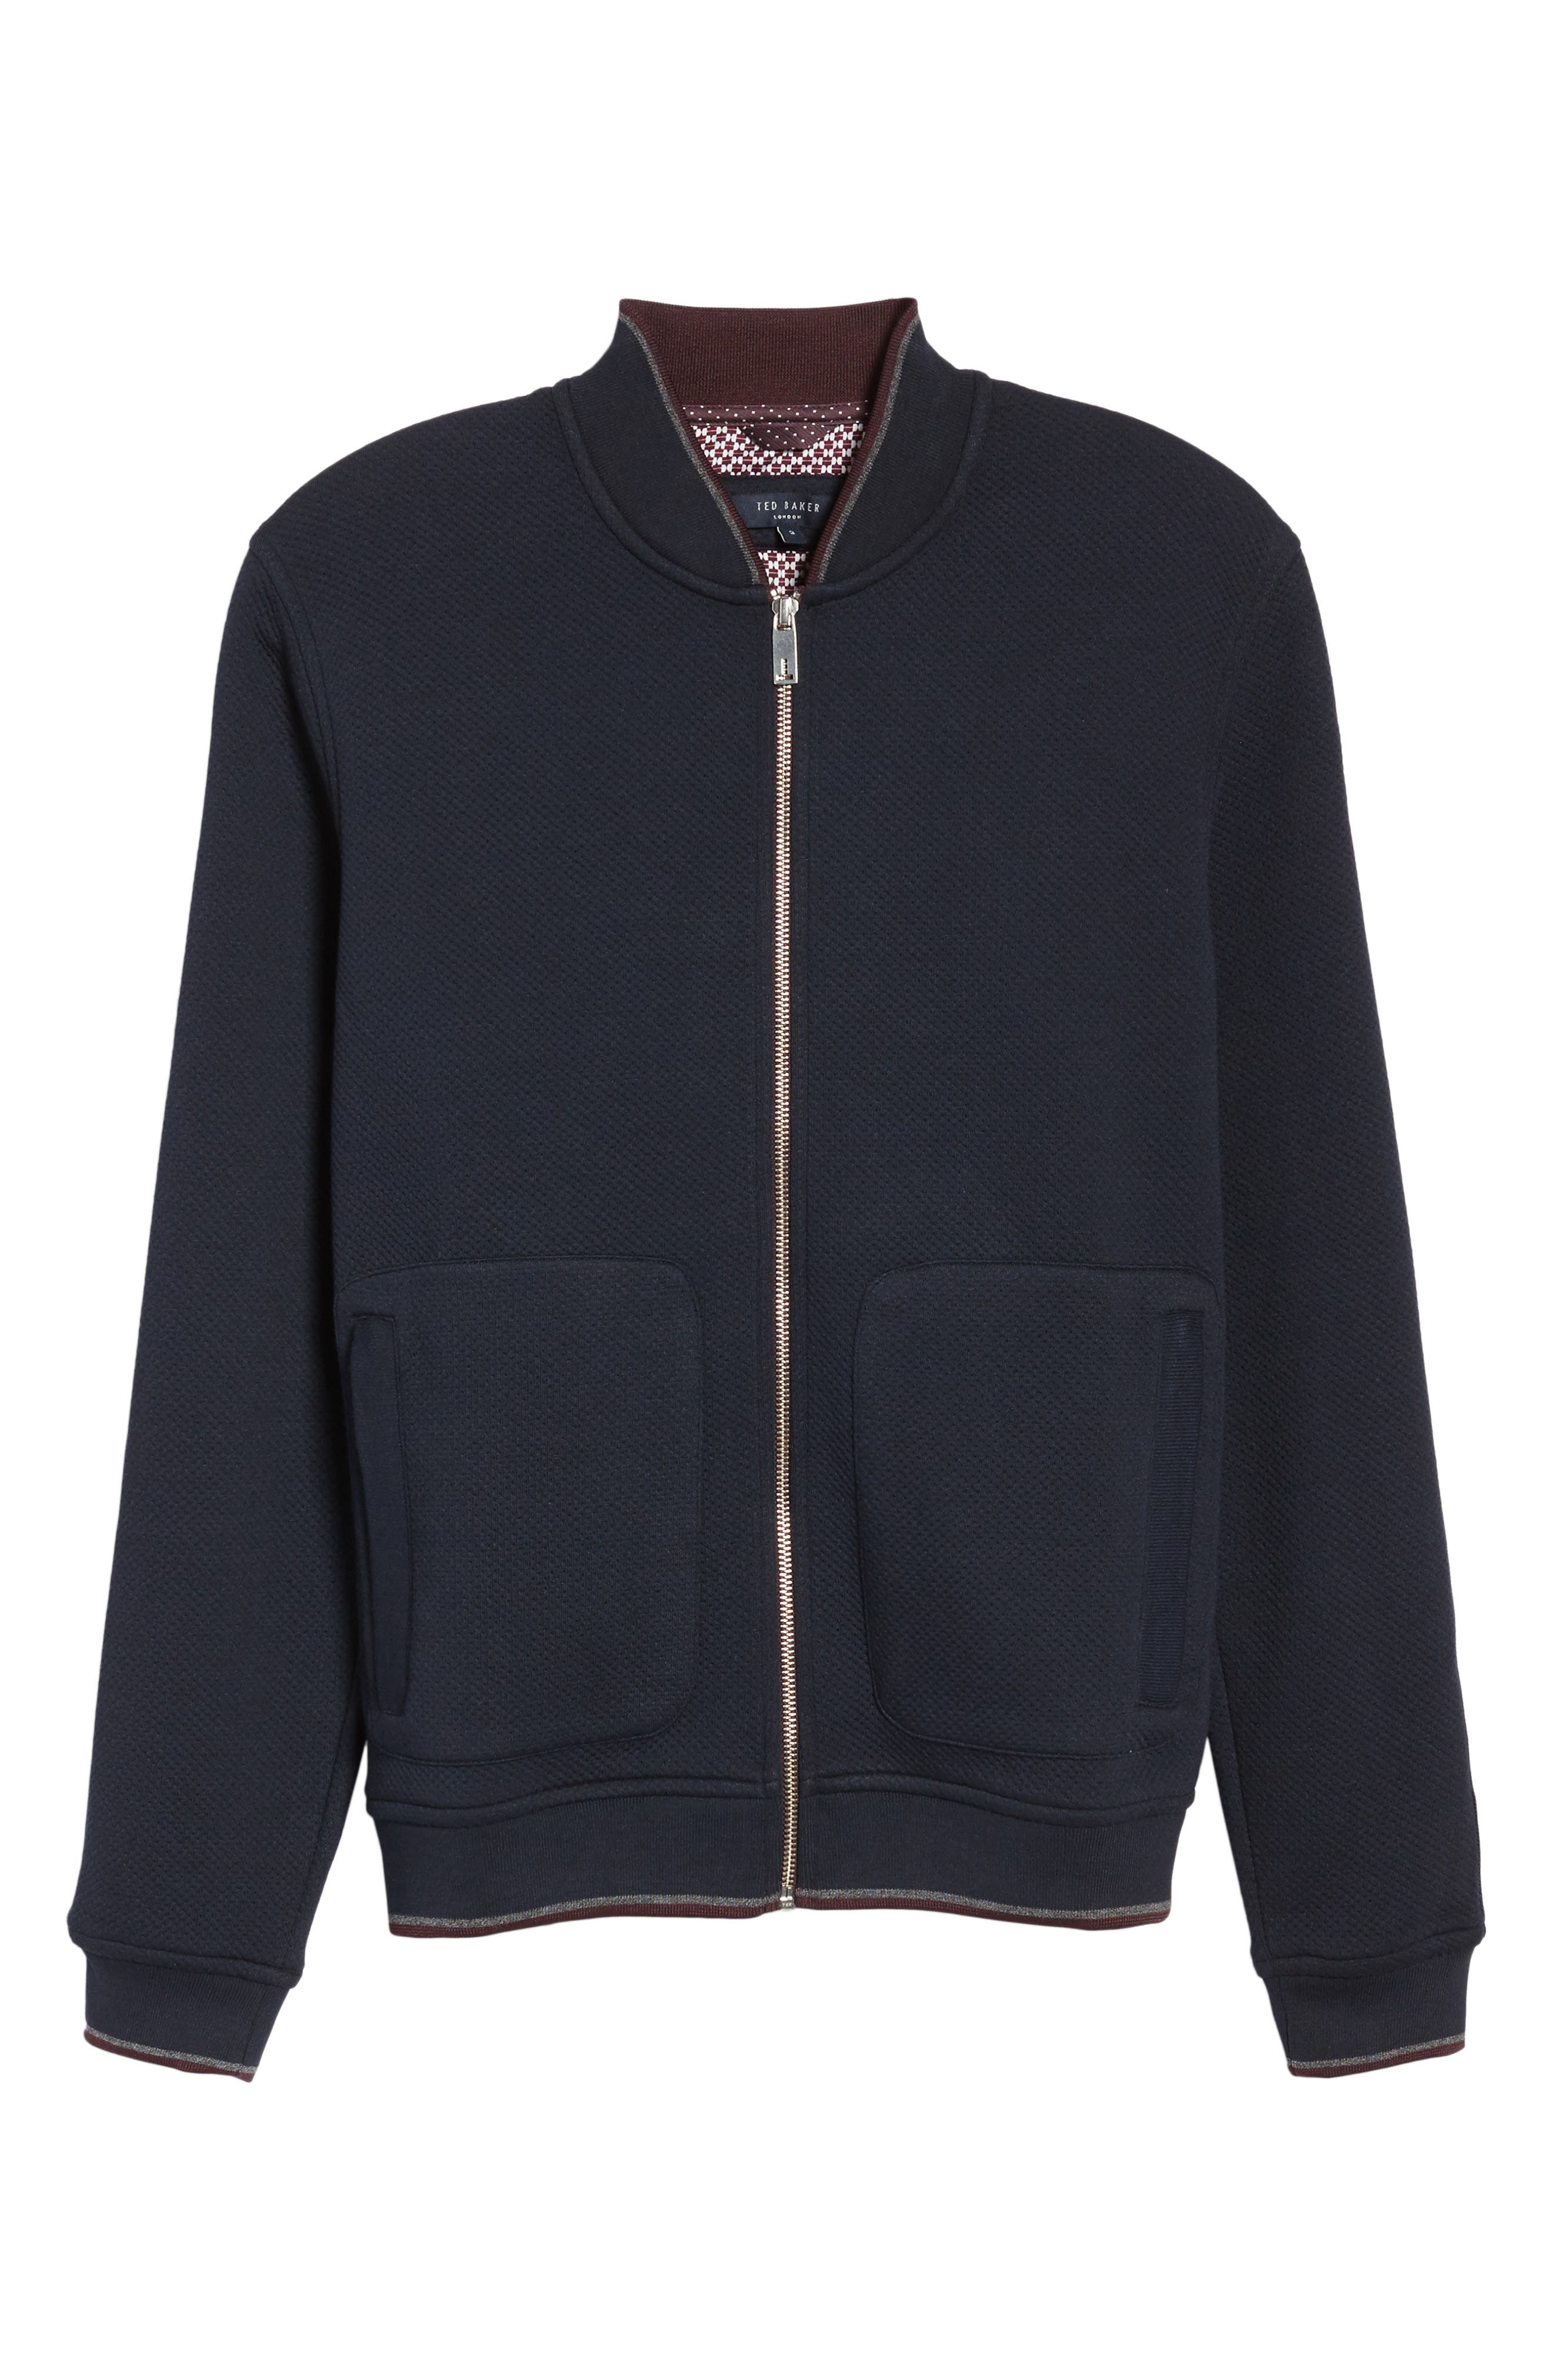 Whatts Trim Fit Textured Bomber Jacket,                             Alternate thumbnail 5, color,                             410